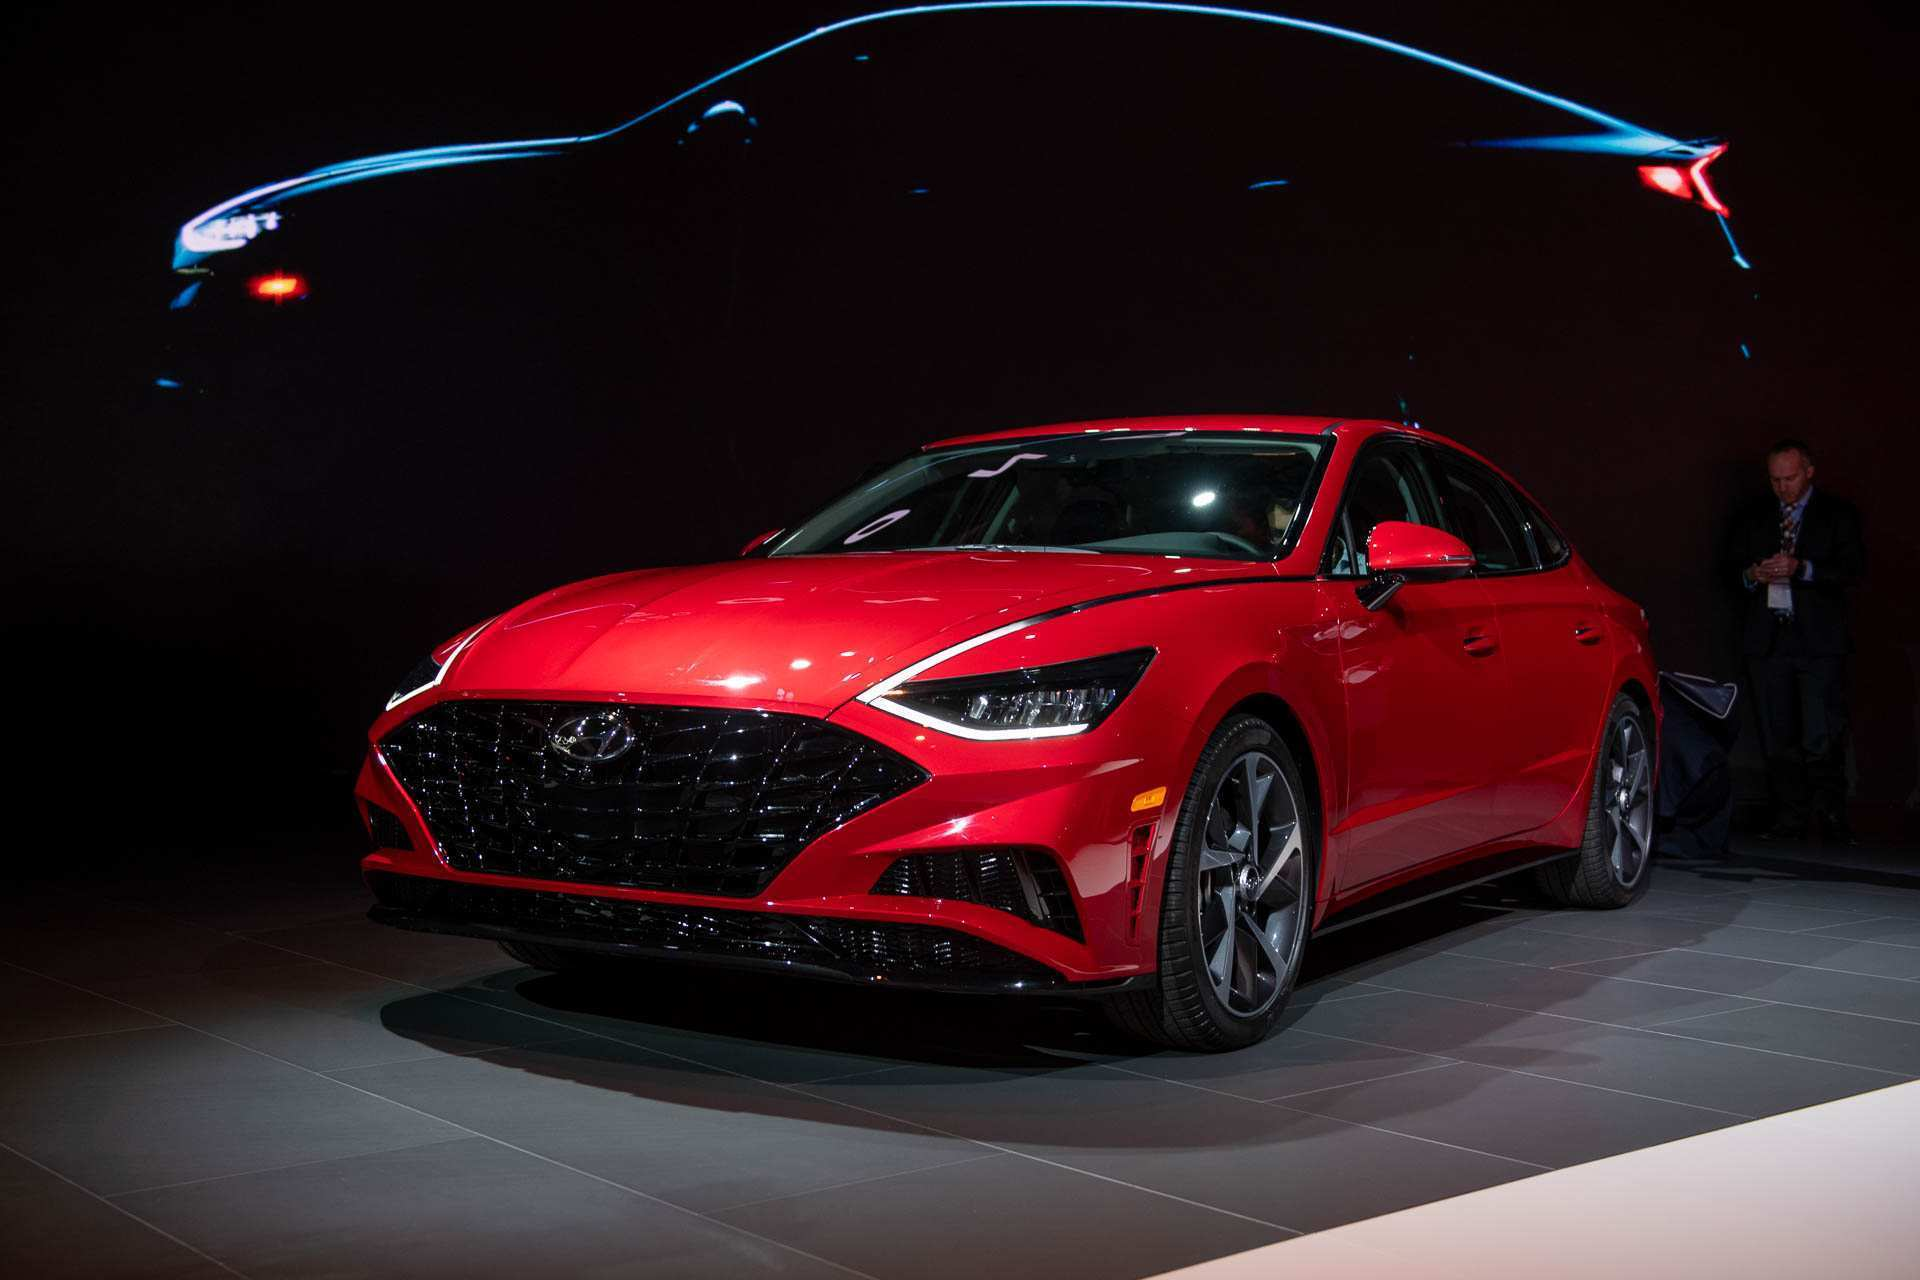 77 All New 2020 Hyundai Sonata Build Prices